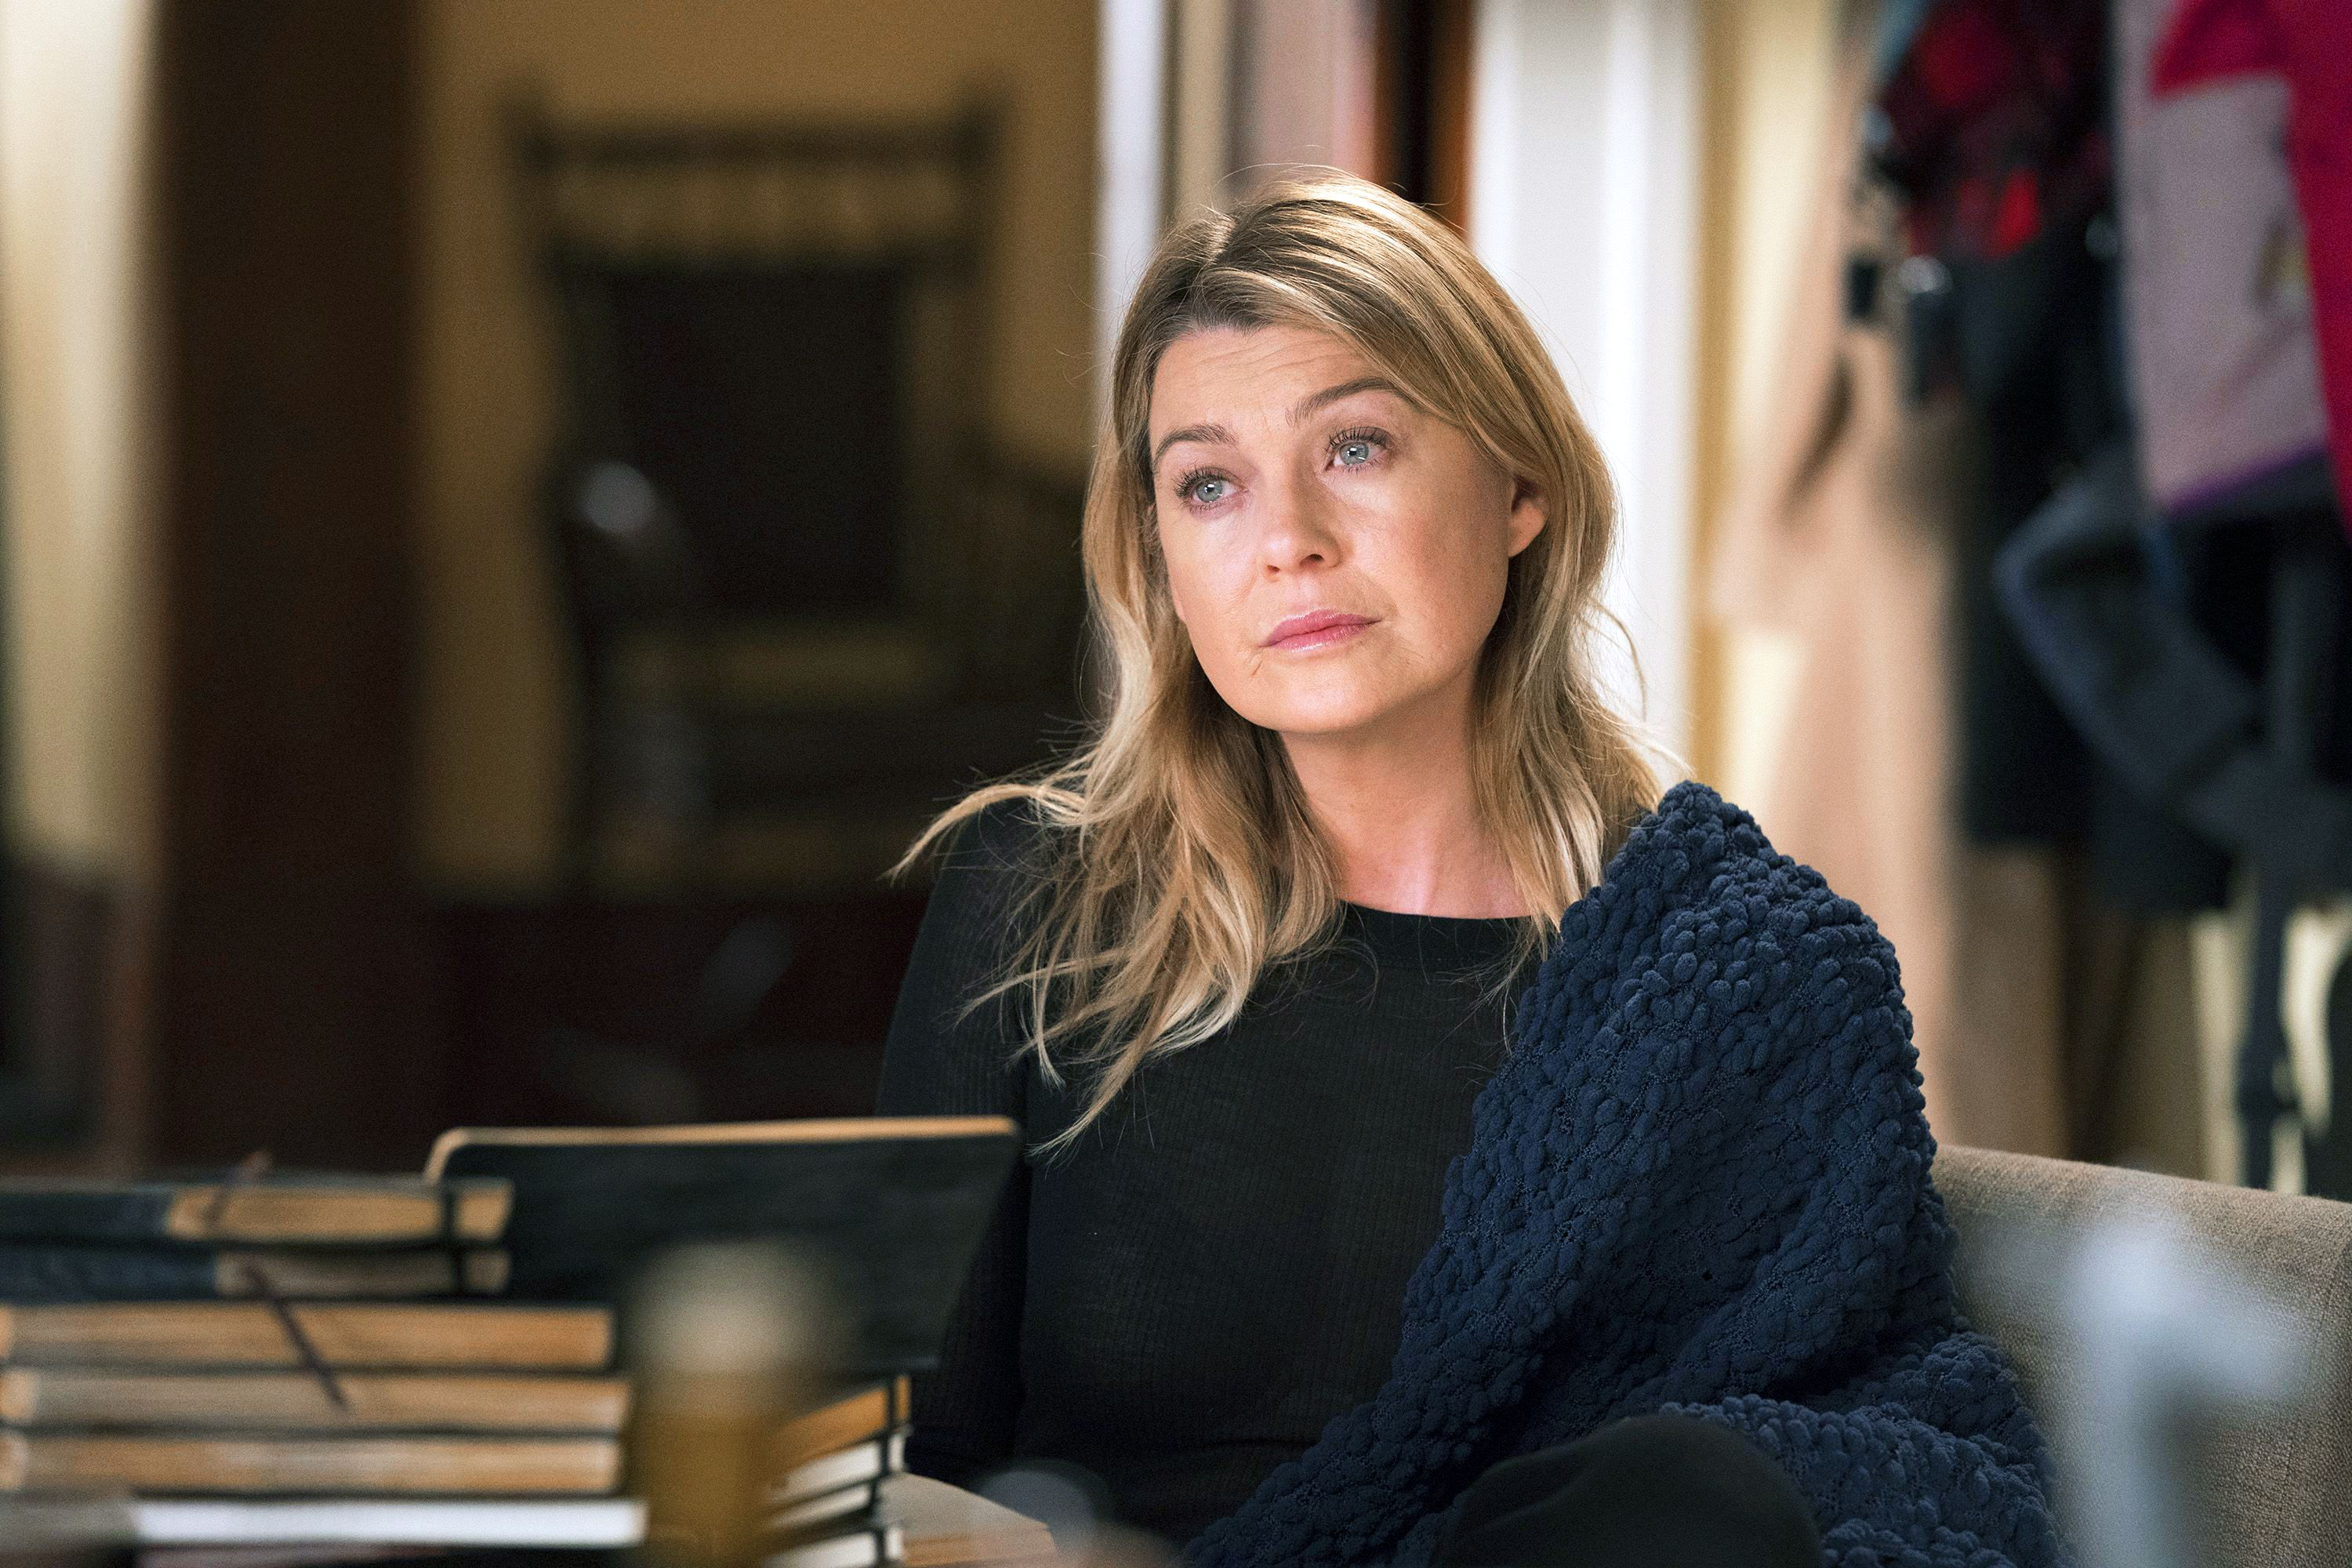 Ellen Pompeo Says Goodbye to Grey's Anatomy Co-Stars Ahead of Finale